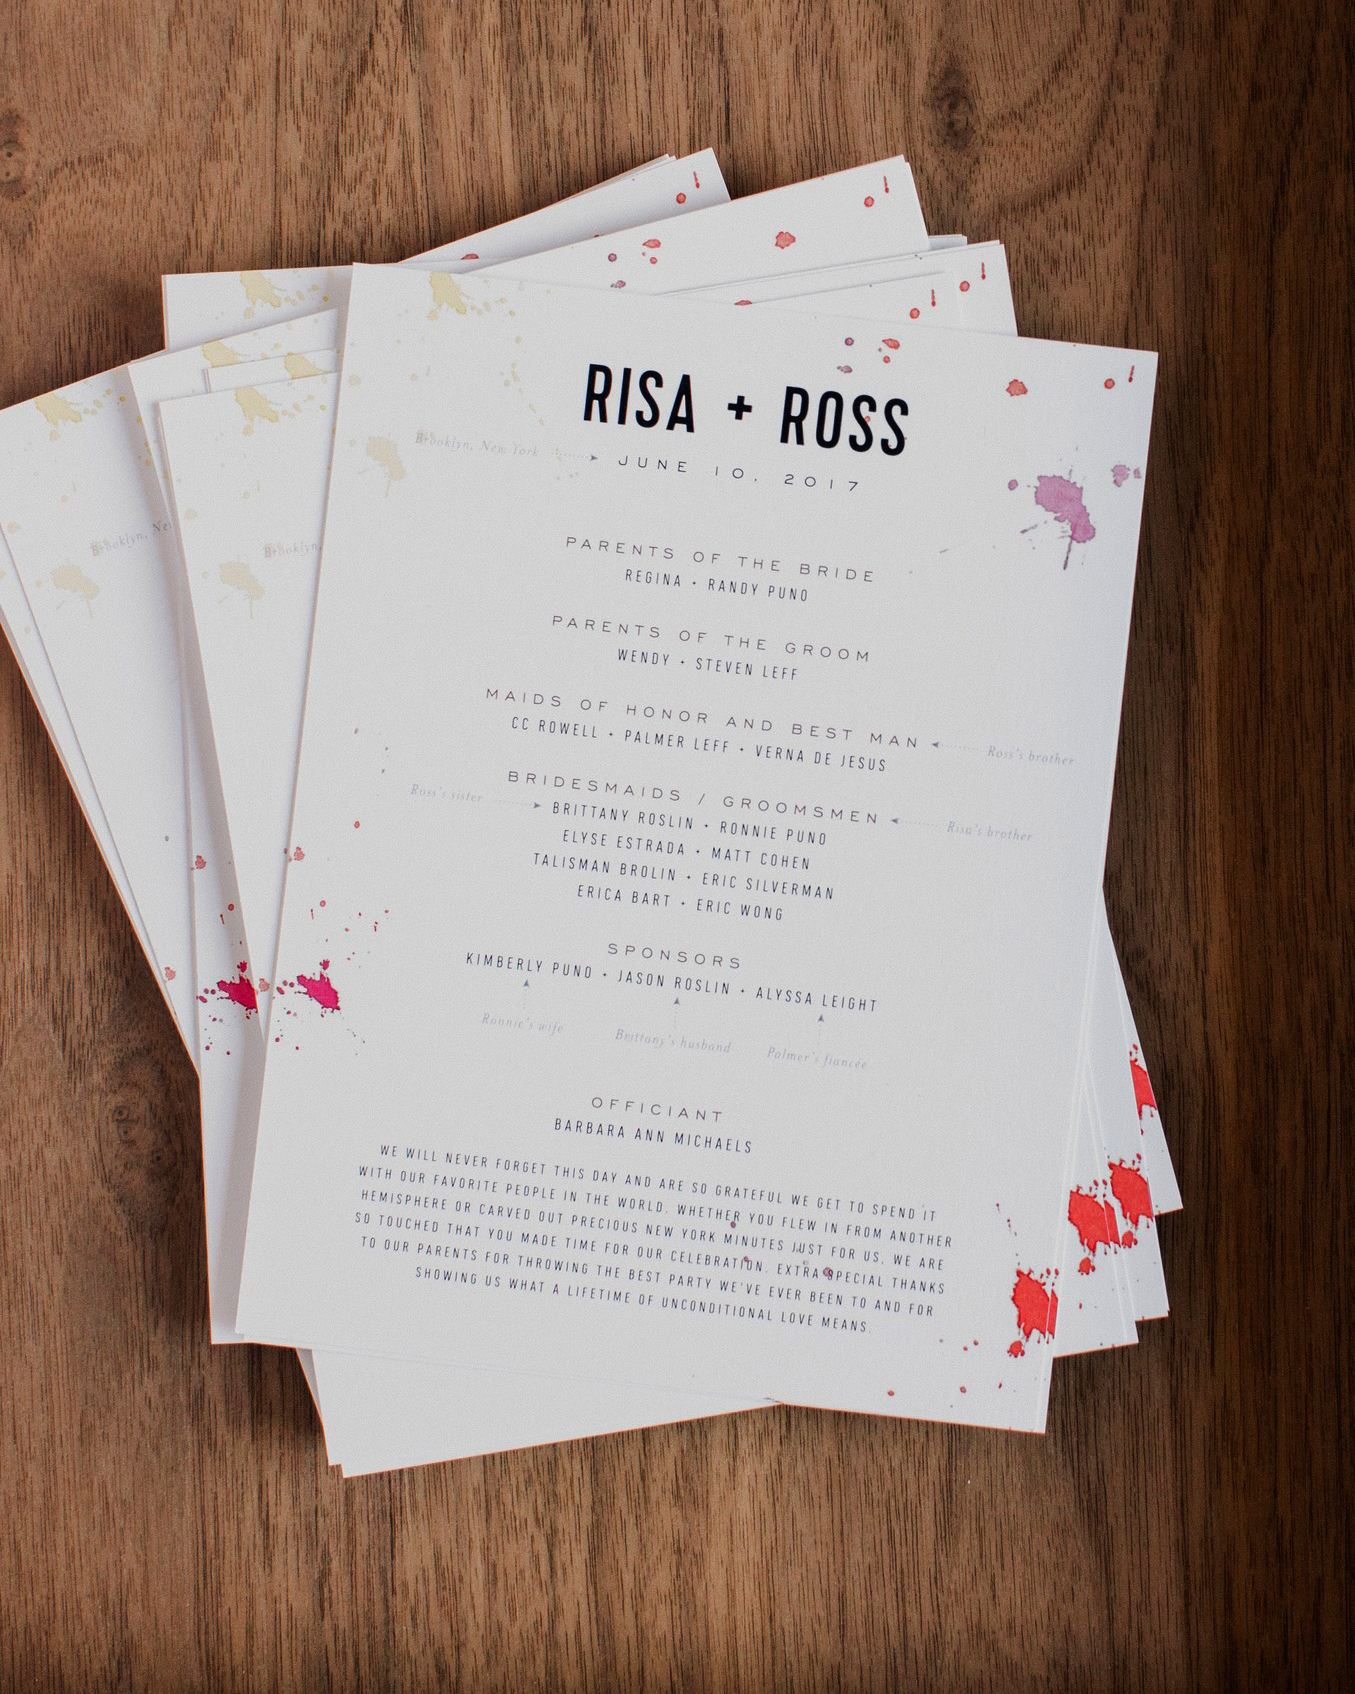 risa ross wedding brooklyn new york program